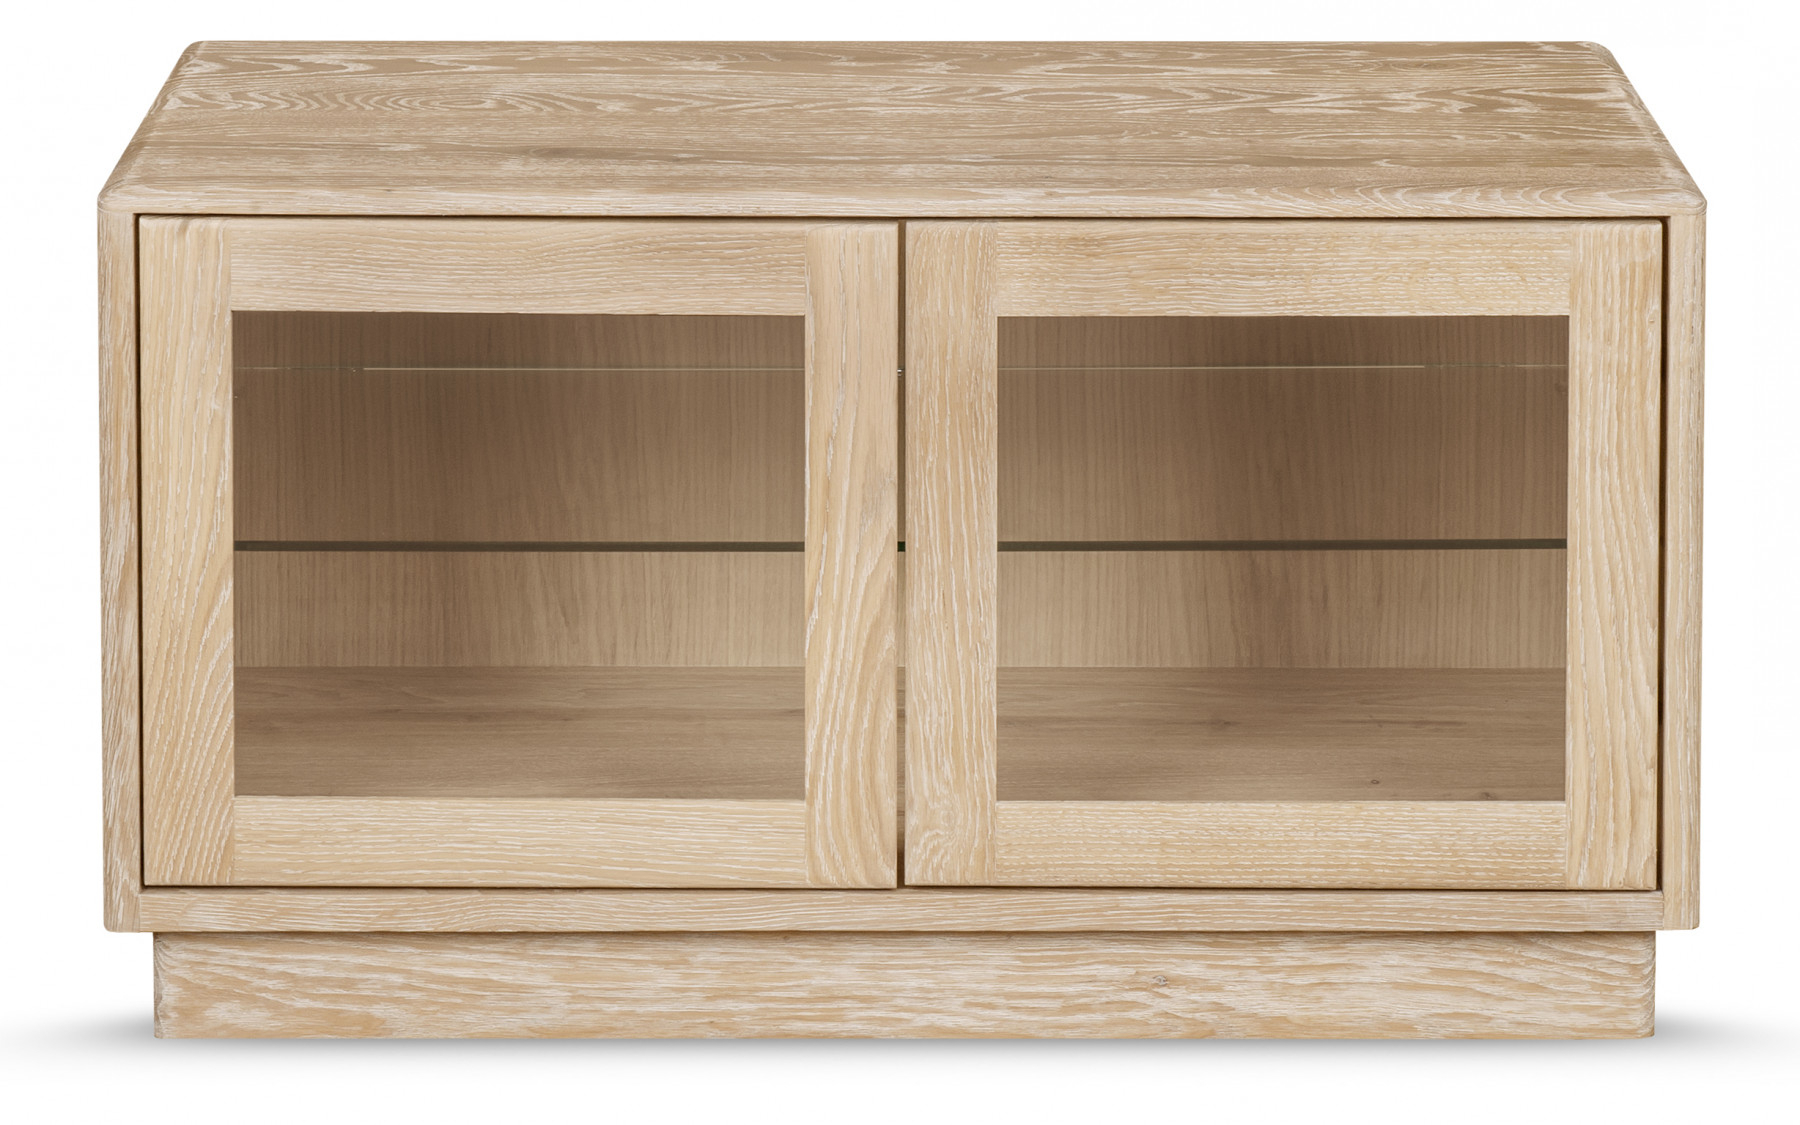 Solid Oak Within Most Popular Oak Tv Cabinets With Doors (View 16 of 20)